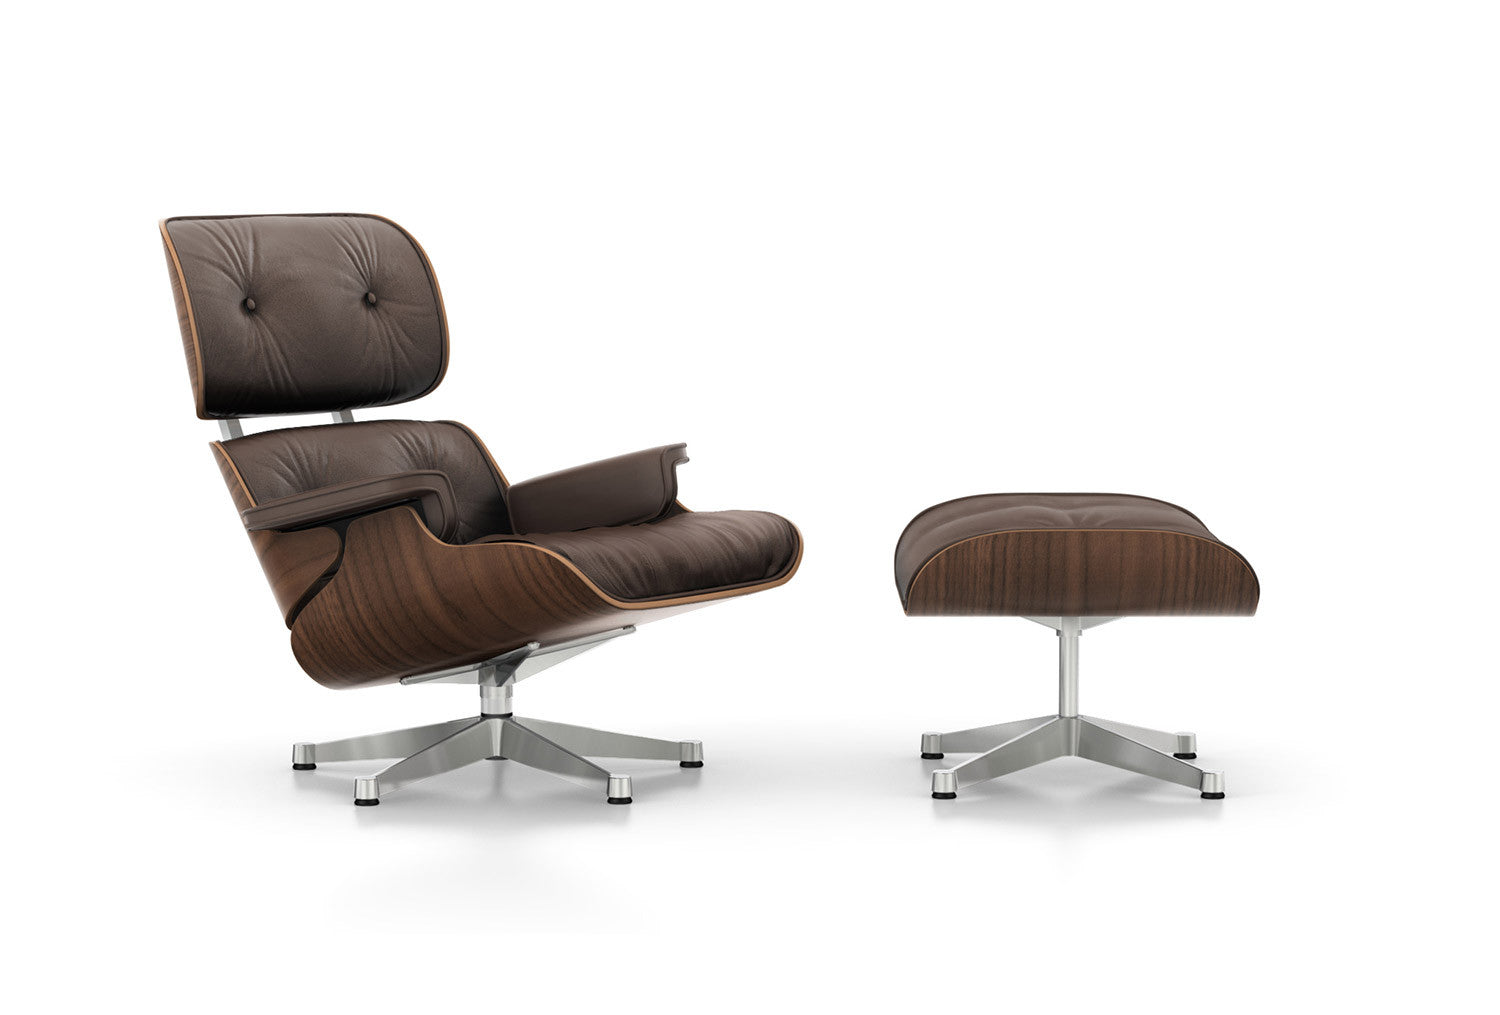 Eames Lounge Chair And Ottoman Walnut Black Pigmented   Winter Edition